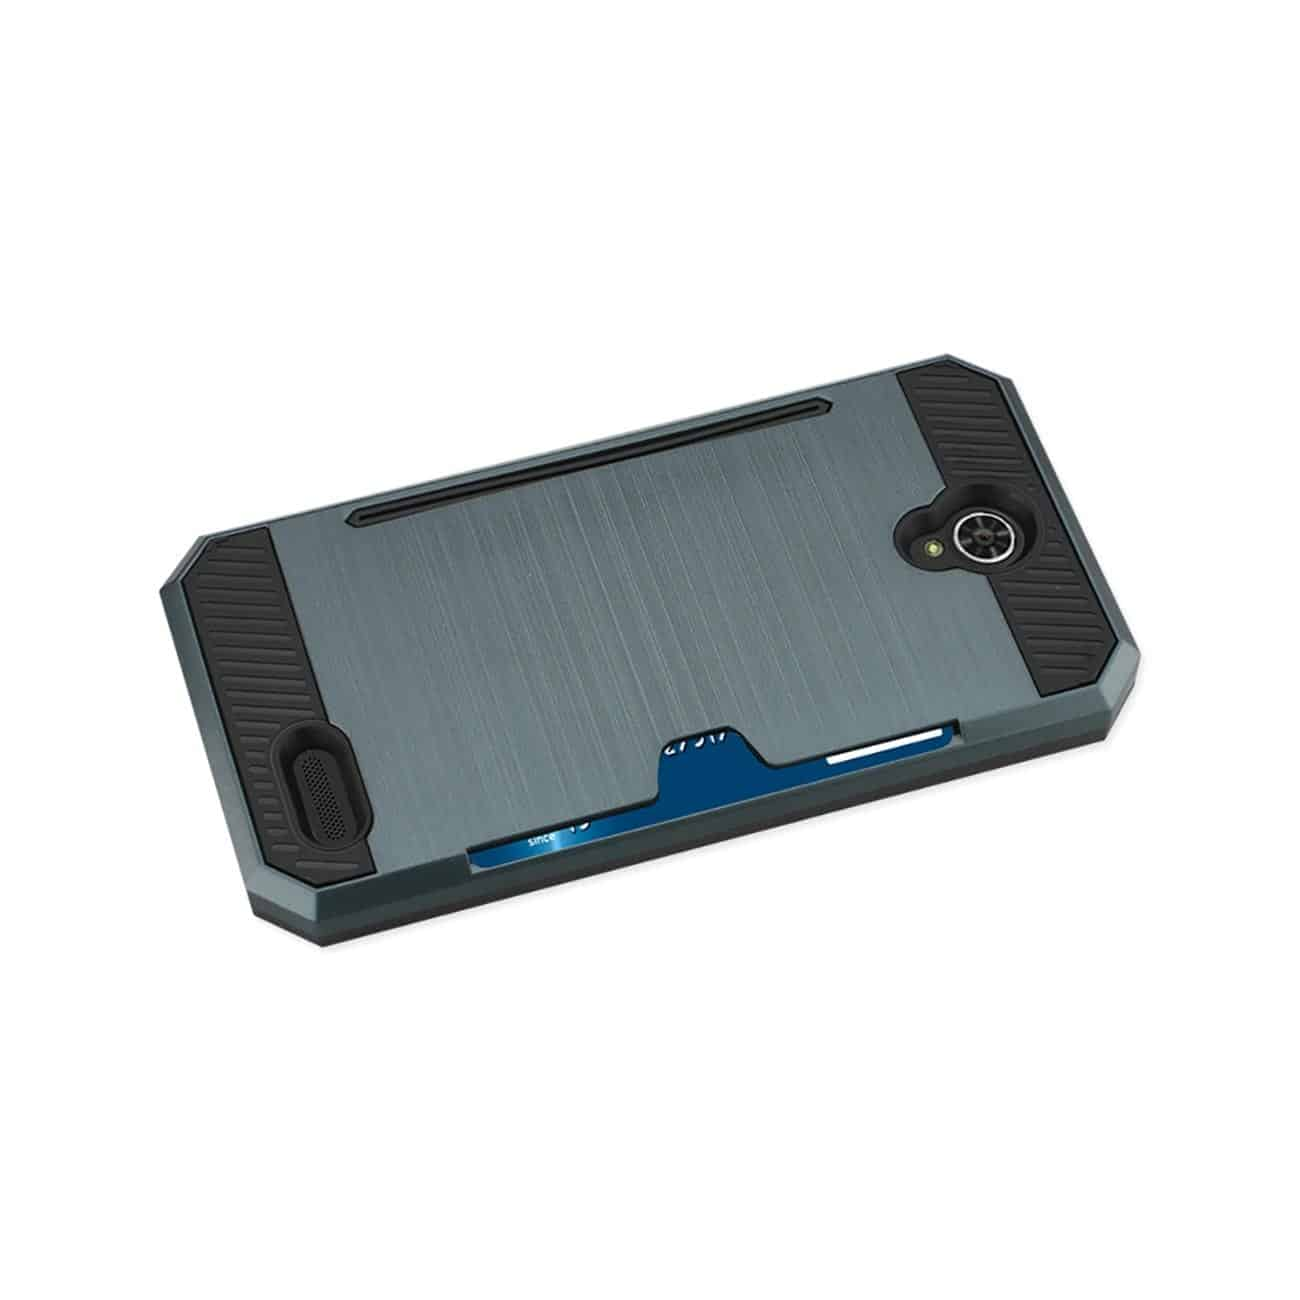 ZTE WARP 7/ Z959 SLIM ARMOR HYBRID CASE WITH CARD HOLDER IN NAVY